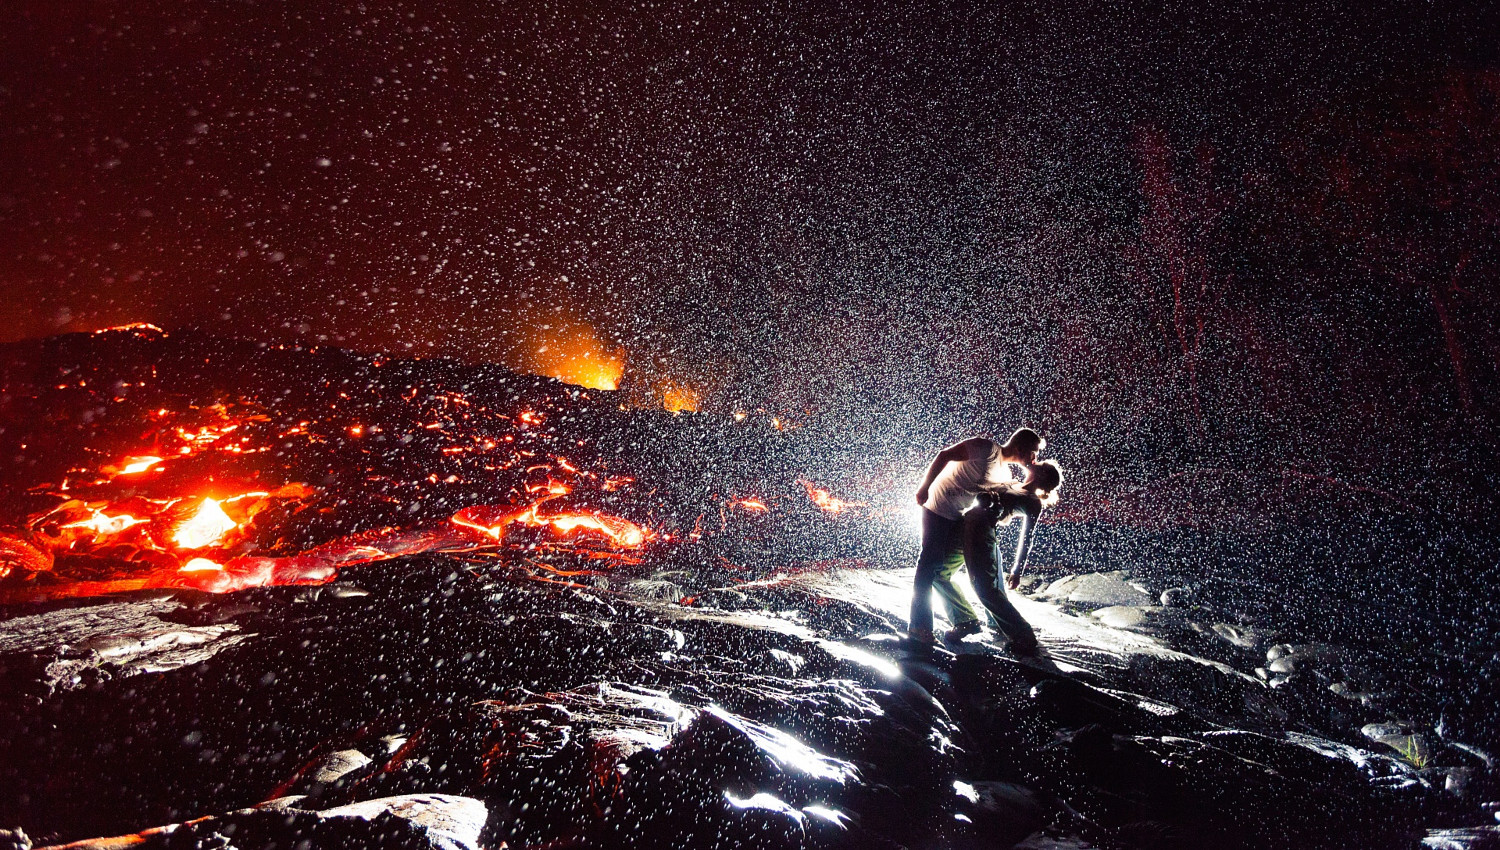 The Story Behind 'The Hottest Kiss in the World' Photo